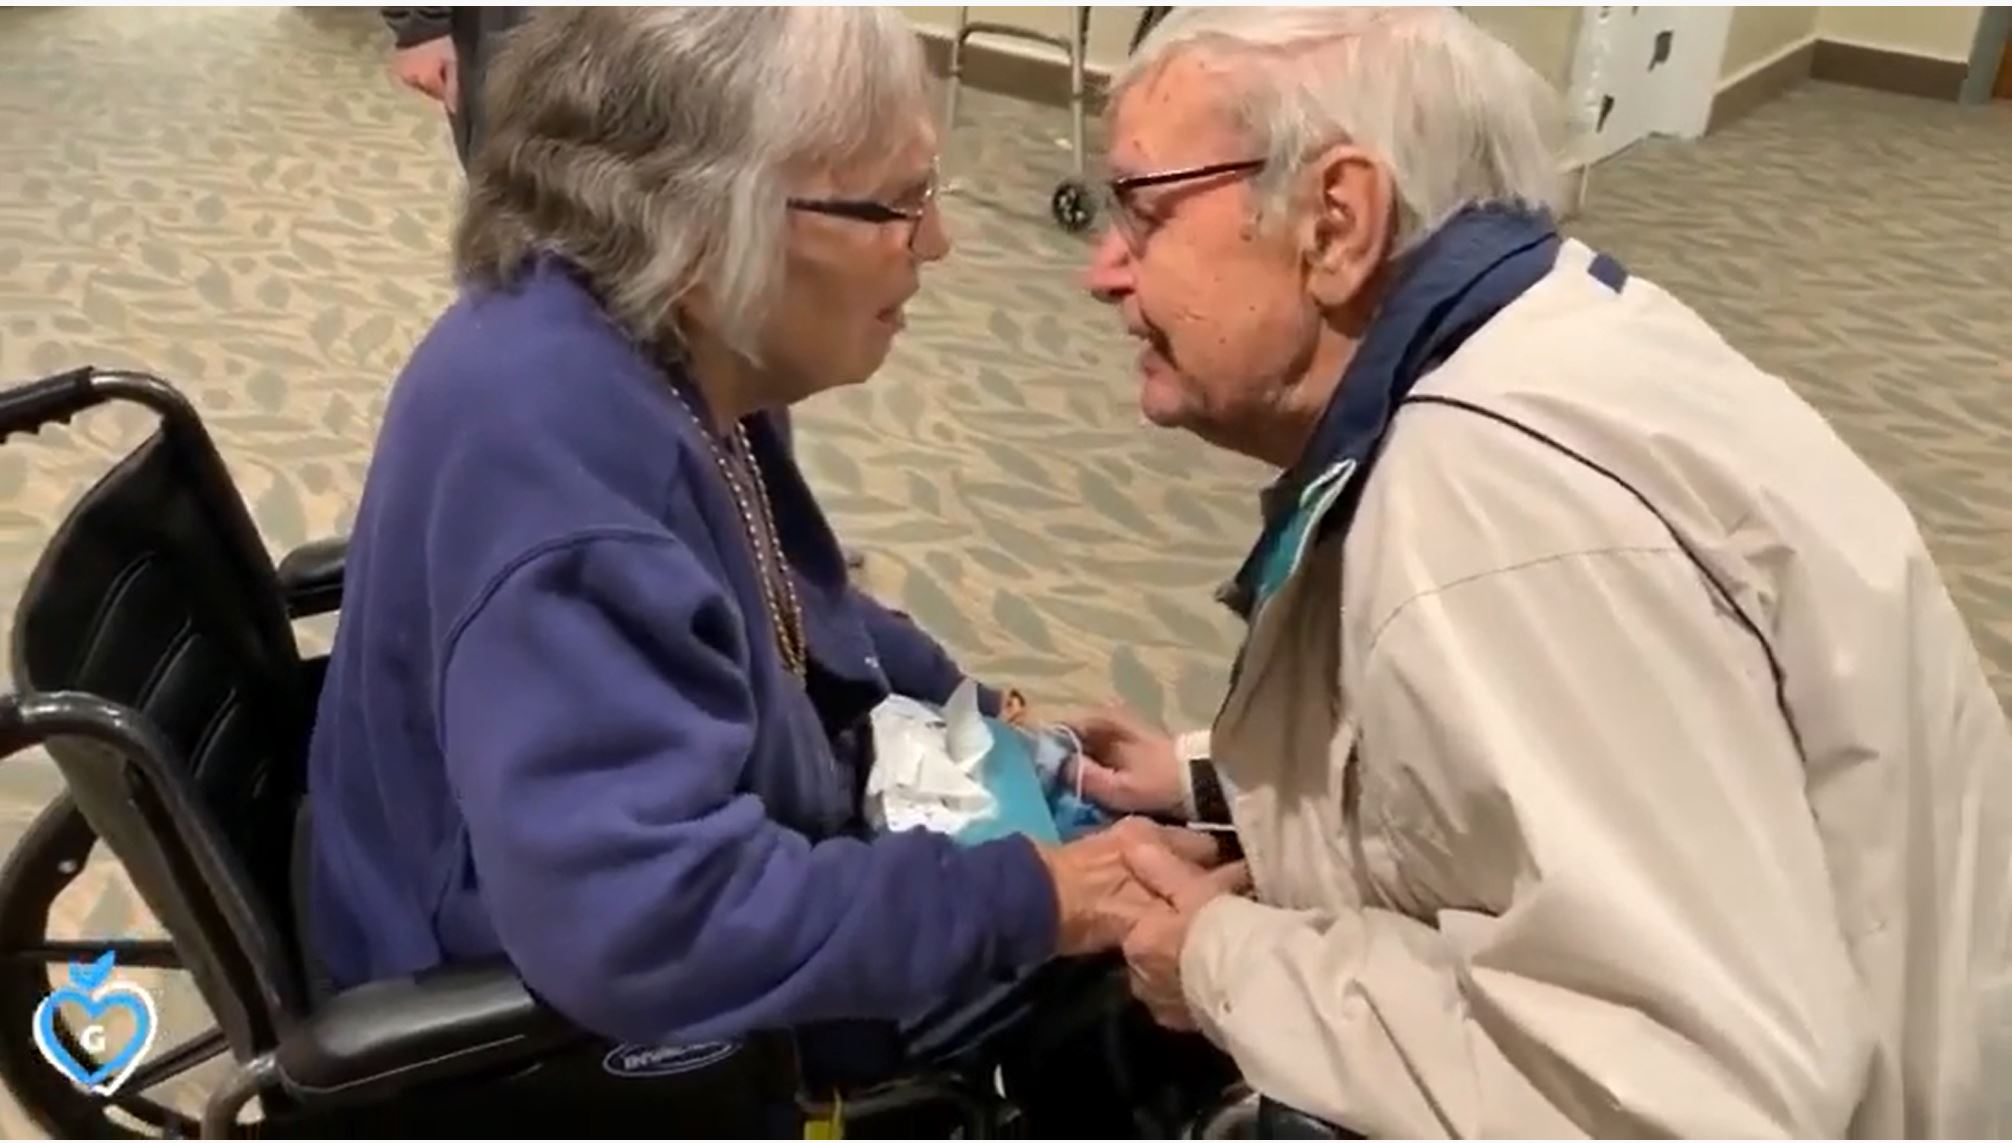 For this week's Sunday Smile, whether you have had a good or bad week, here is video of Jean & Walter Willard being reunited after COVID-19 separation.